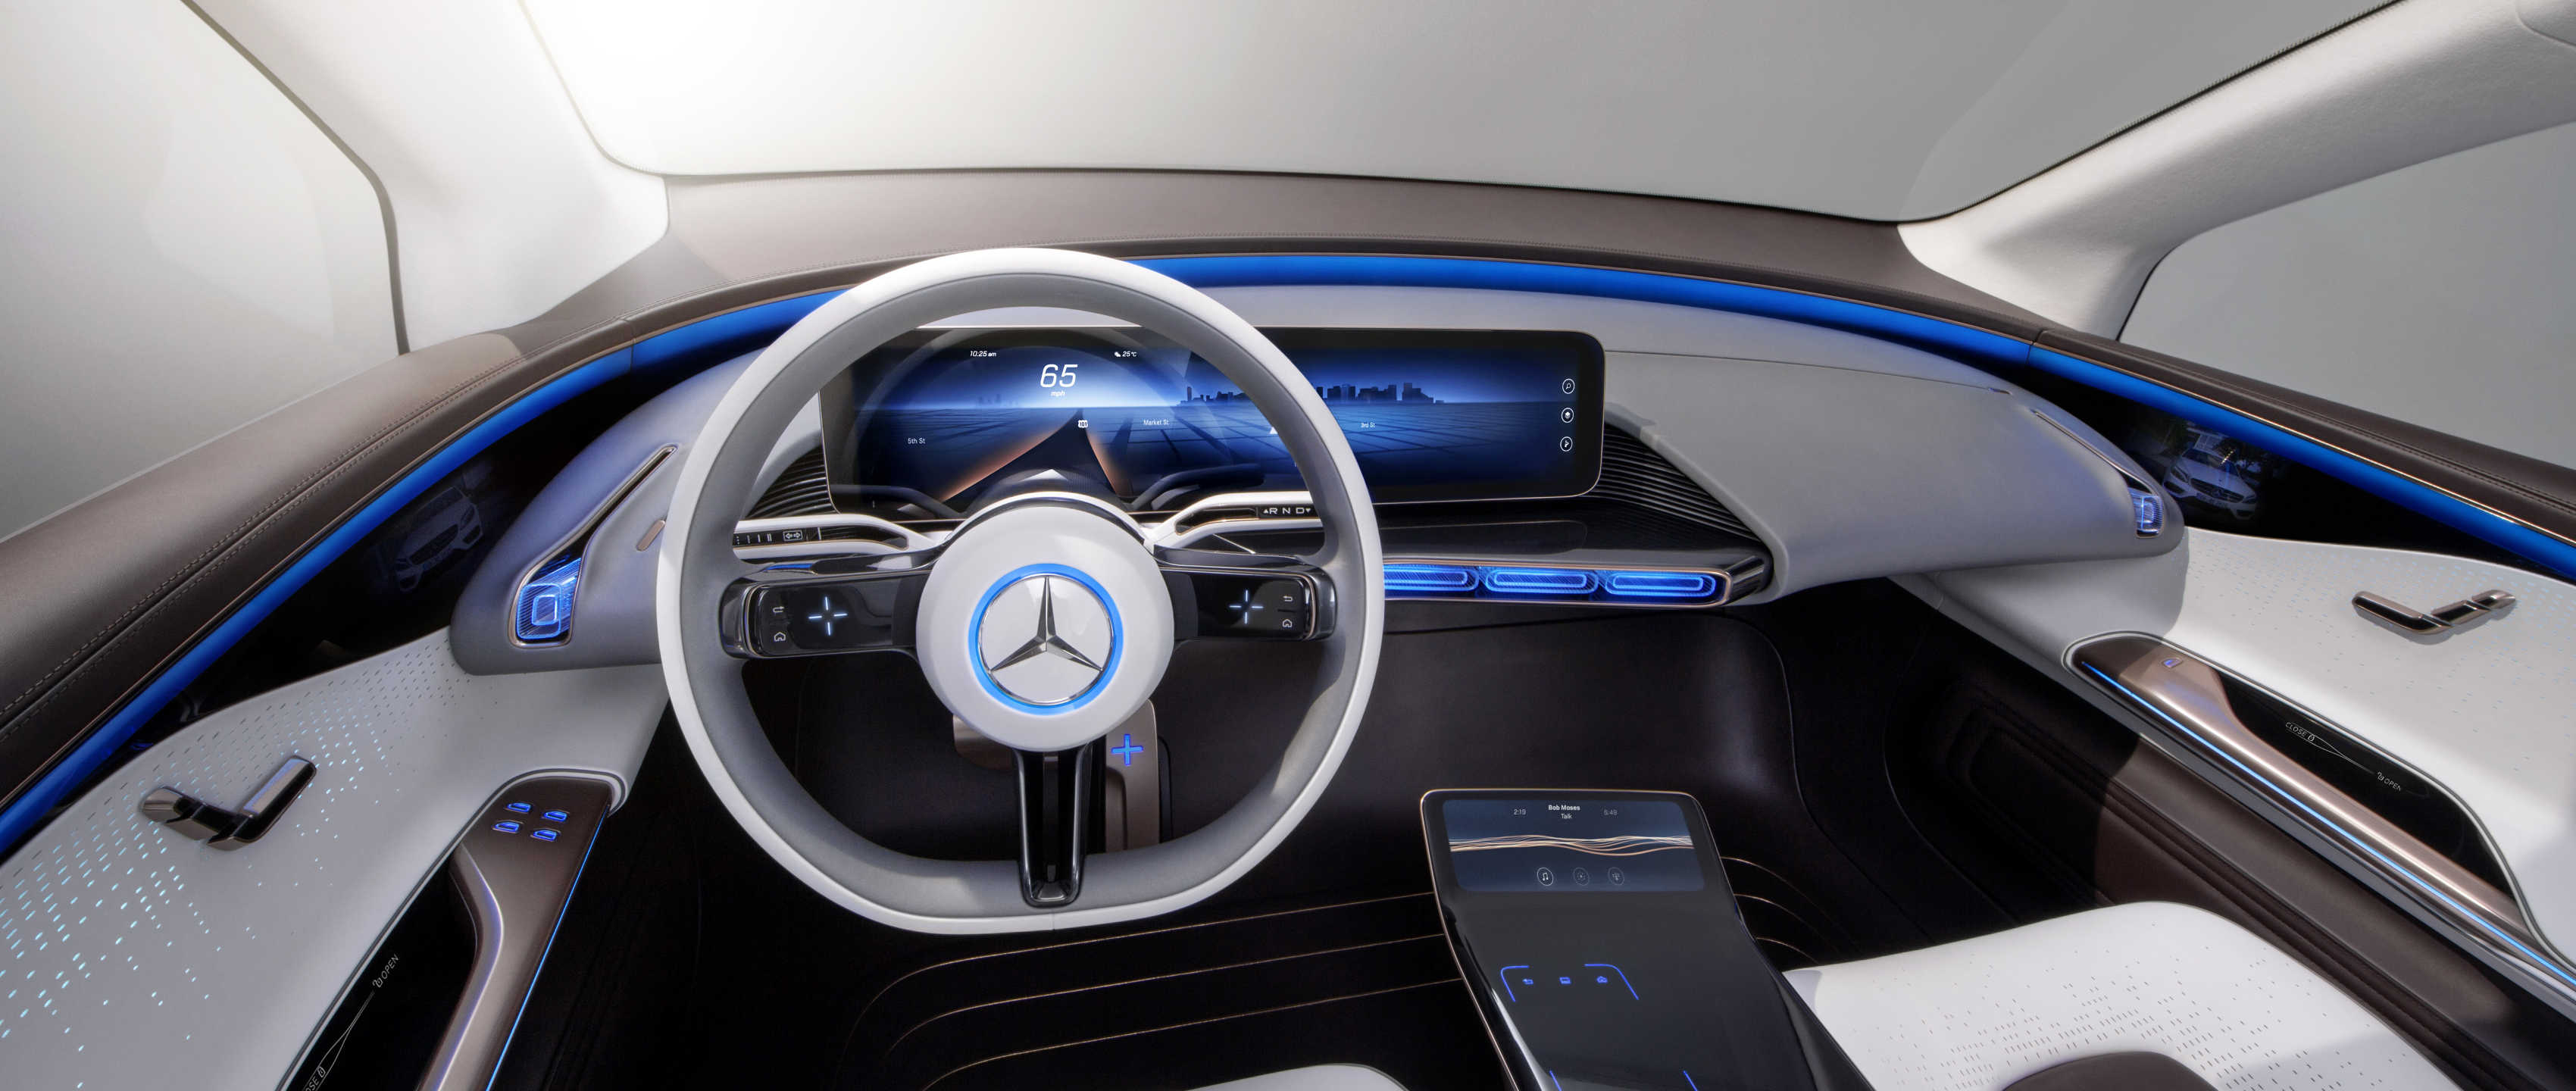 9-mercedes-benz-concept-eq-electric-mobility-3400x1440.jpg